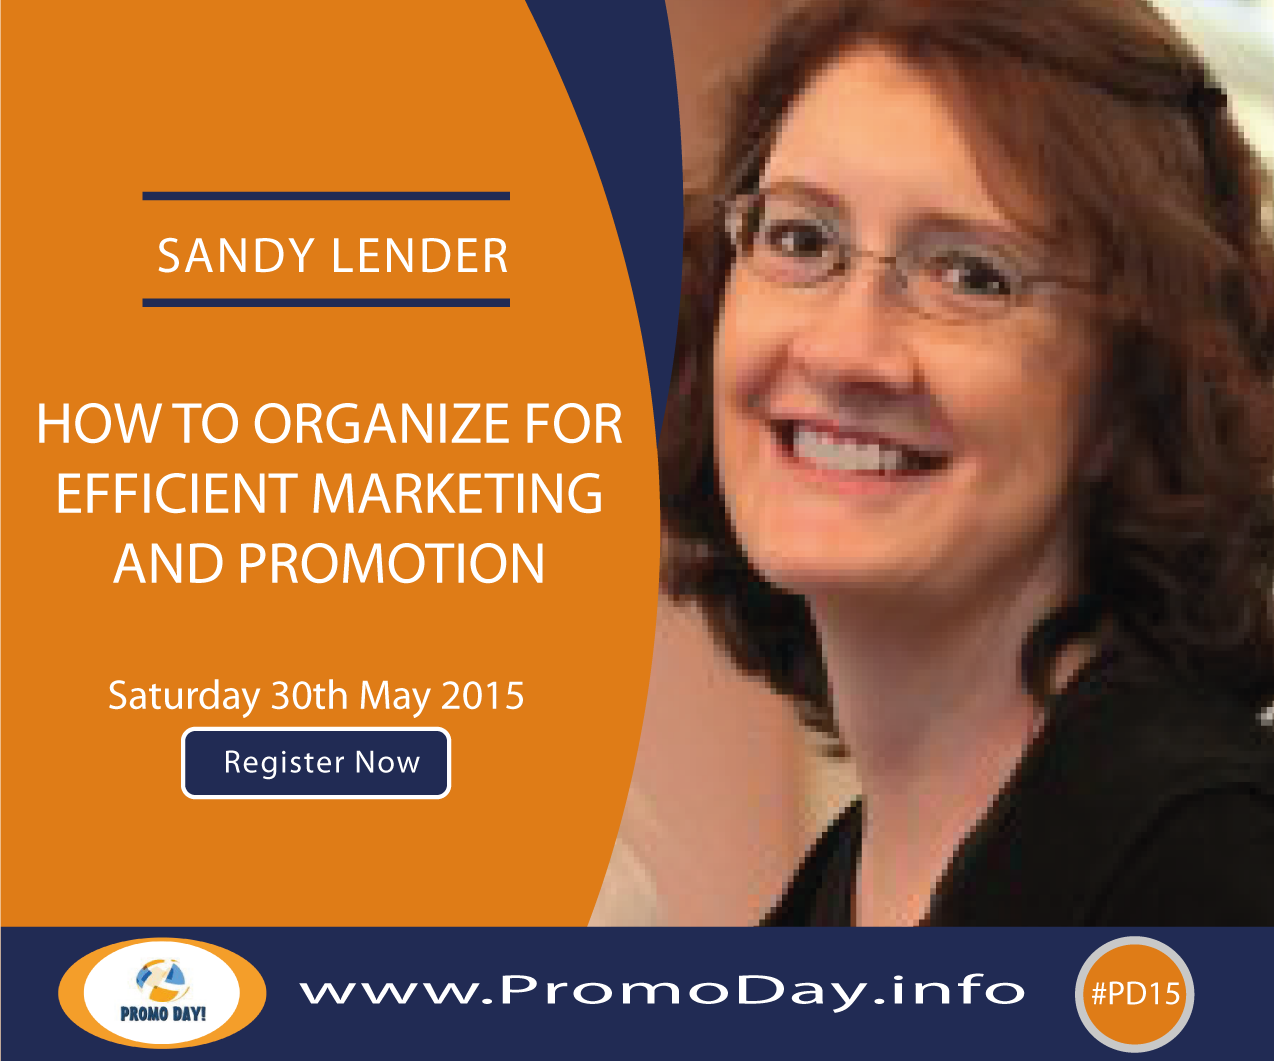 #PD15 Webinar: How to Organize for Efficient Marketing and Promotion with Sandy Lender